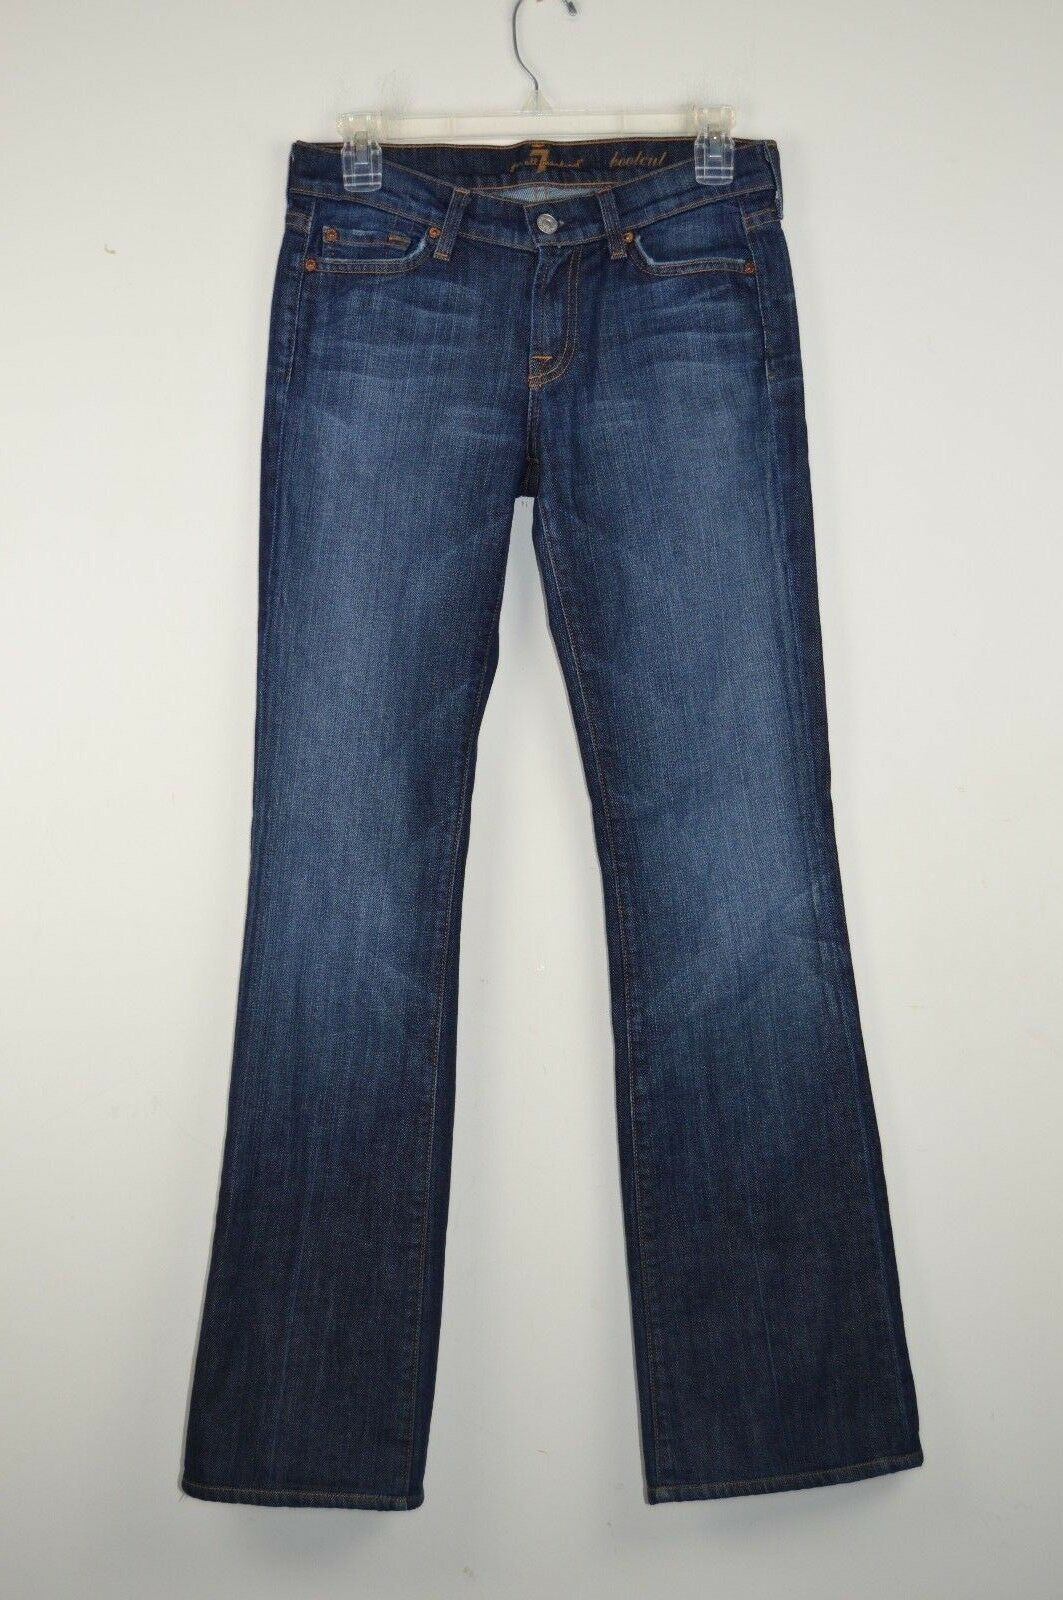 7 For All Mankind Womens 26 Denim Jeans Boot Cut Actual W 28.5 x I 31.5